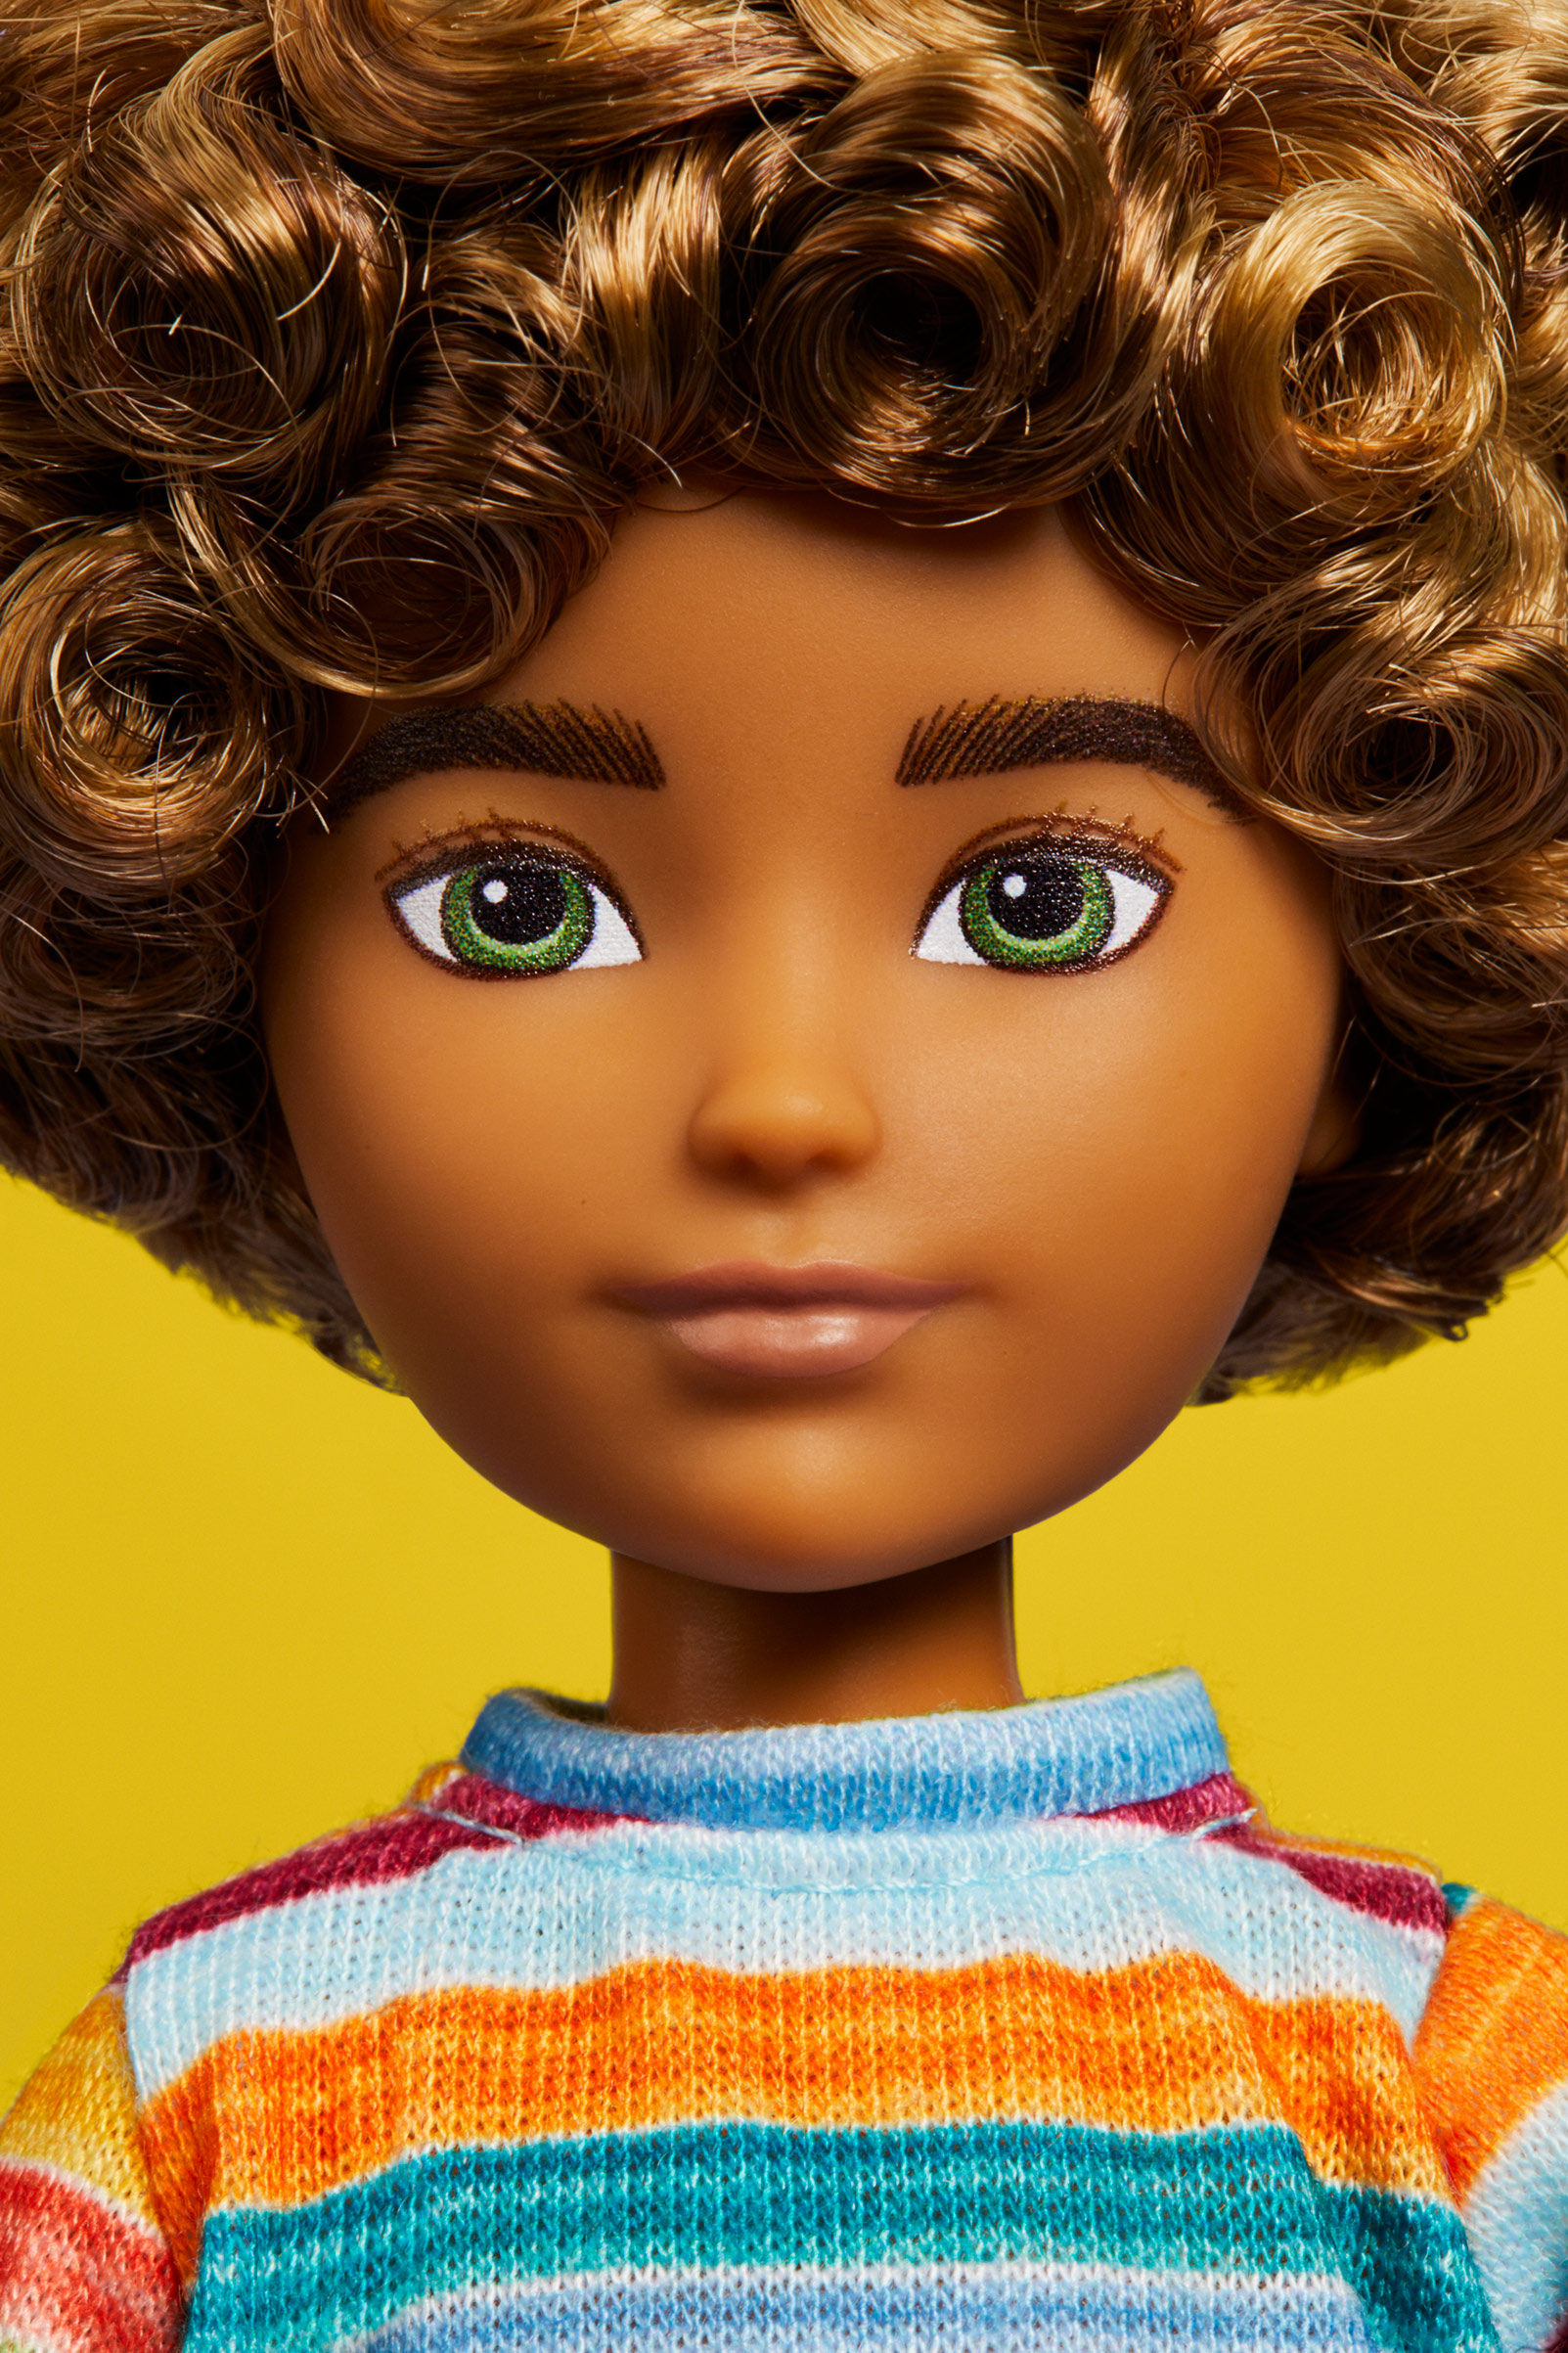 Mattel gender-neutral doll.  It can be a boy, a girl, neither or both,  Oct. 7 issue.